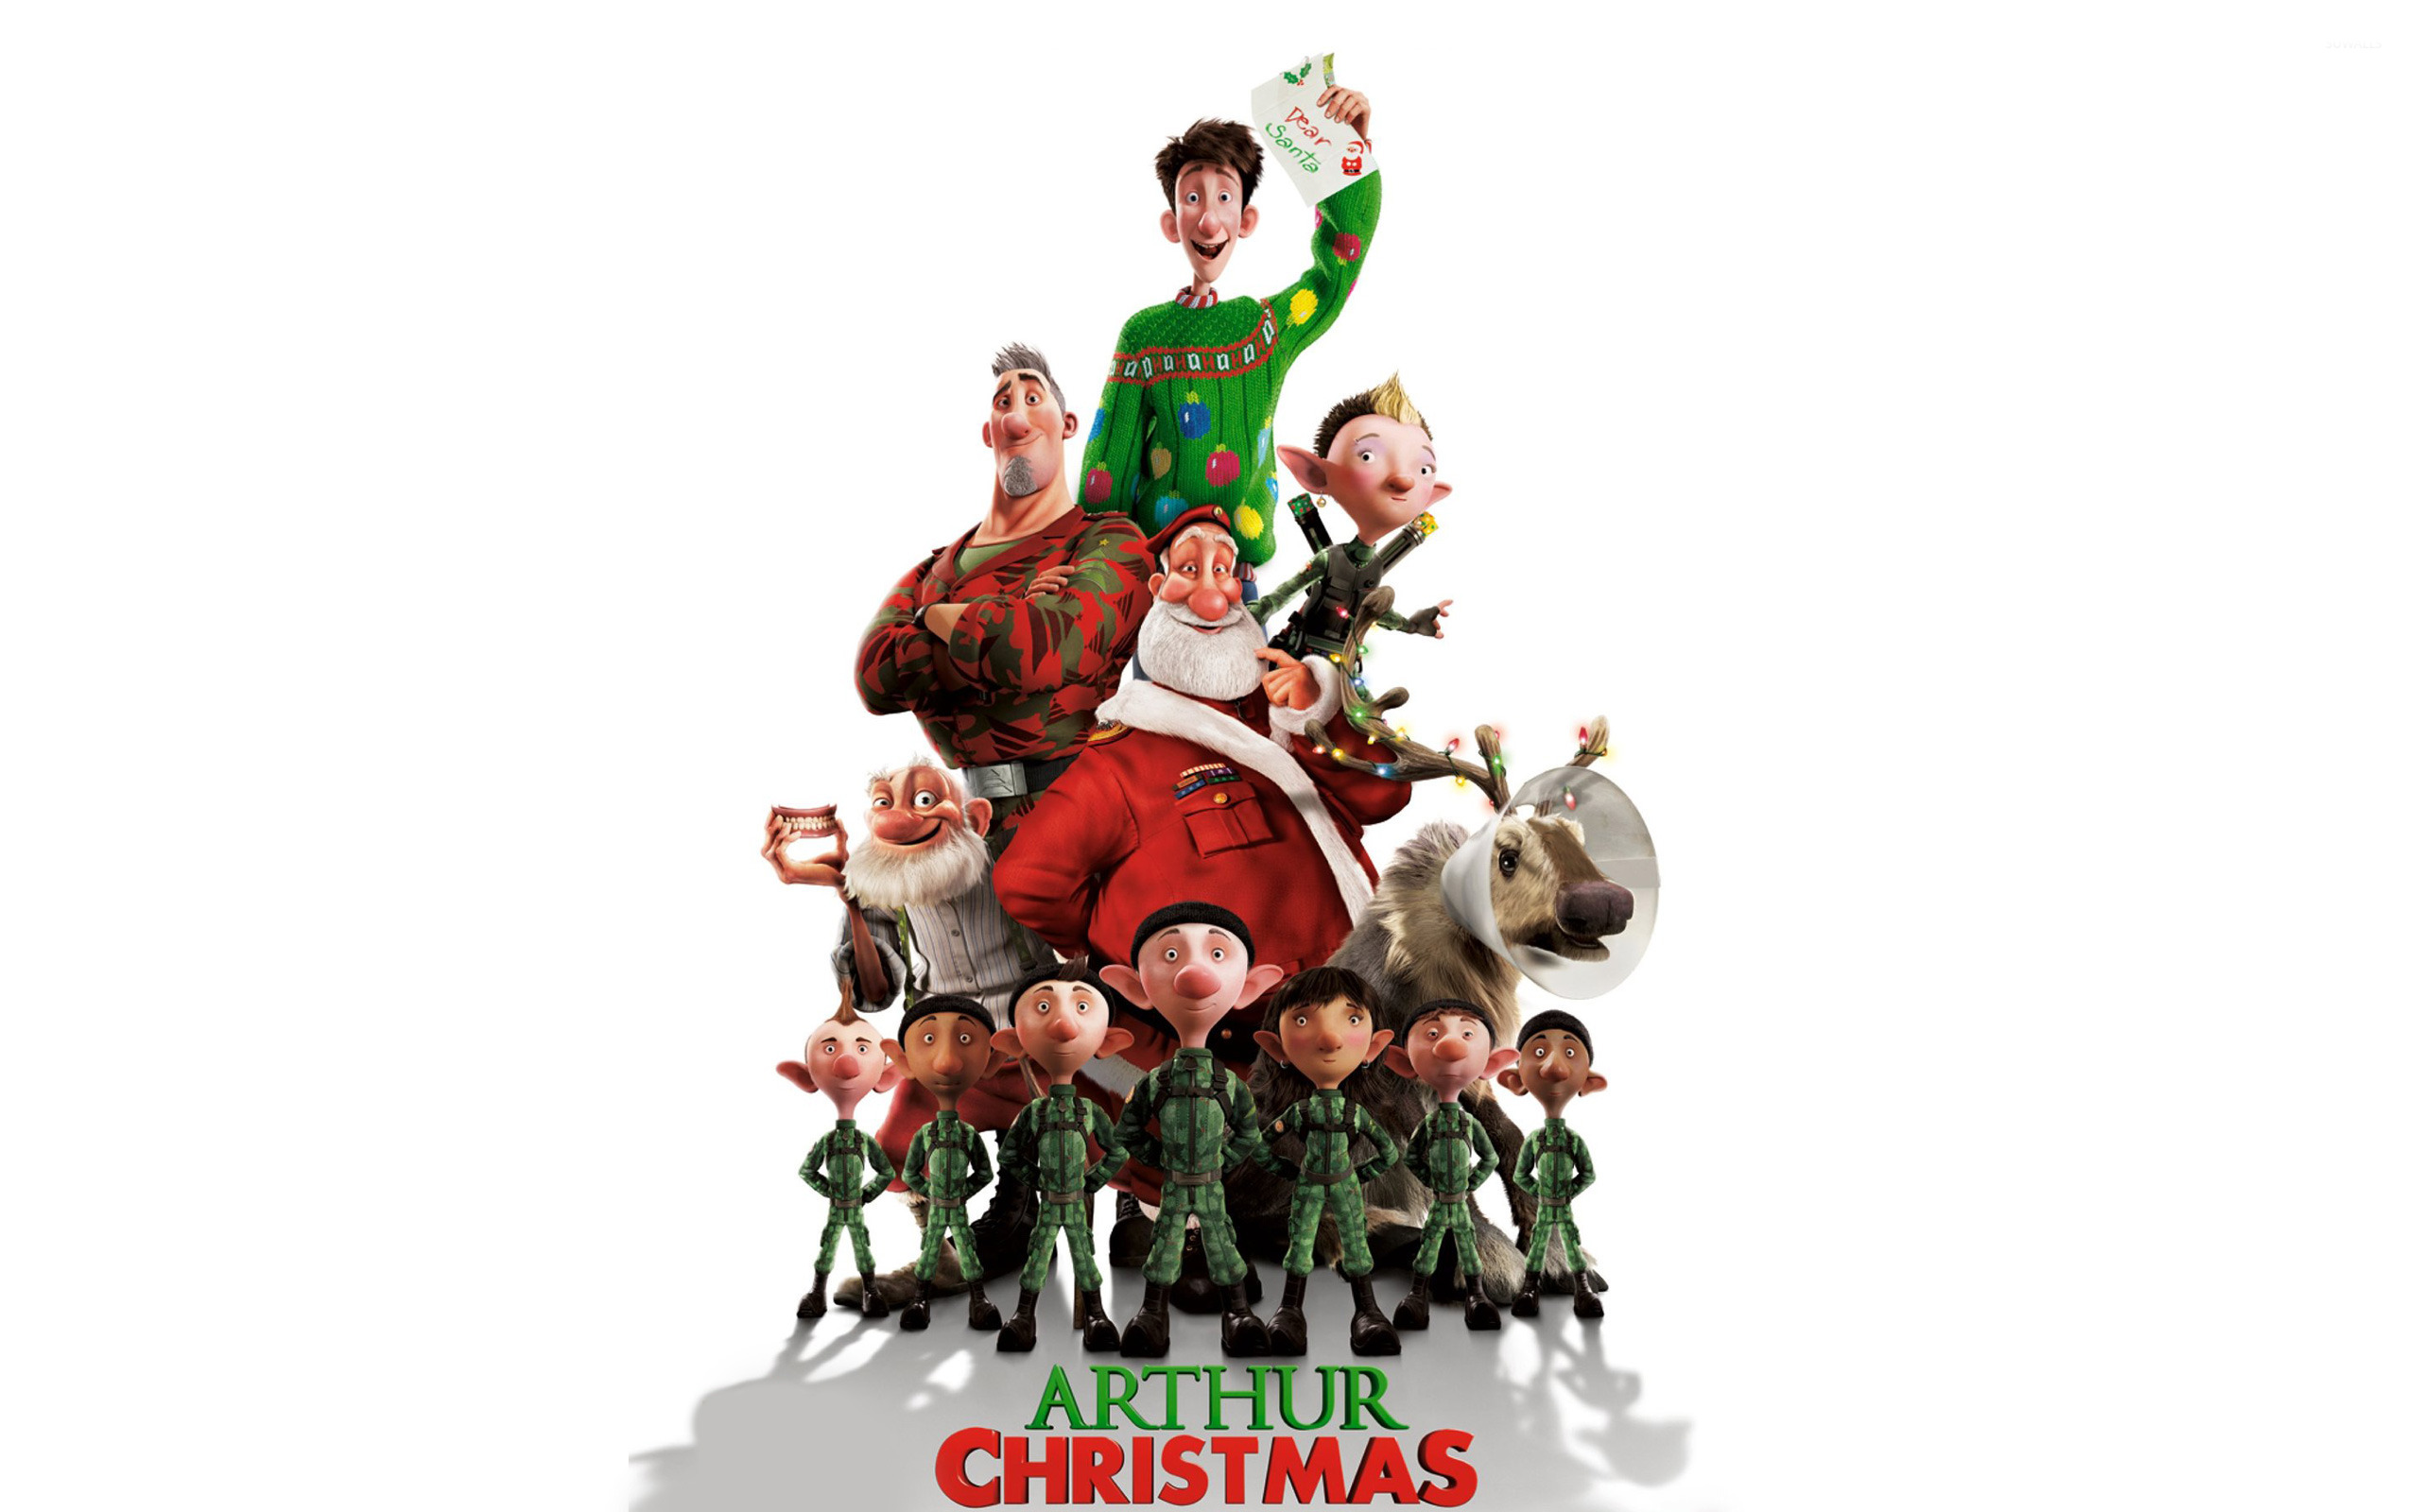 Arthur Christmas HD Wallpaper | Background Image | 2560x1600 | ID ...